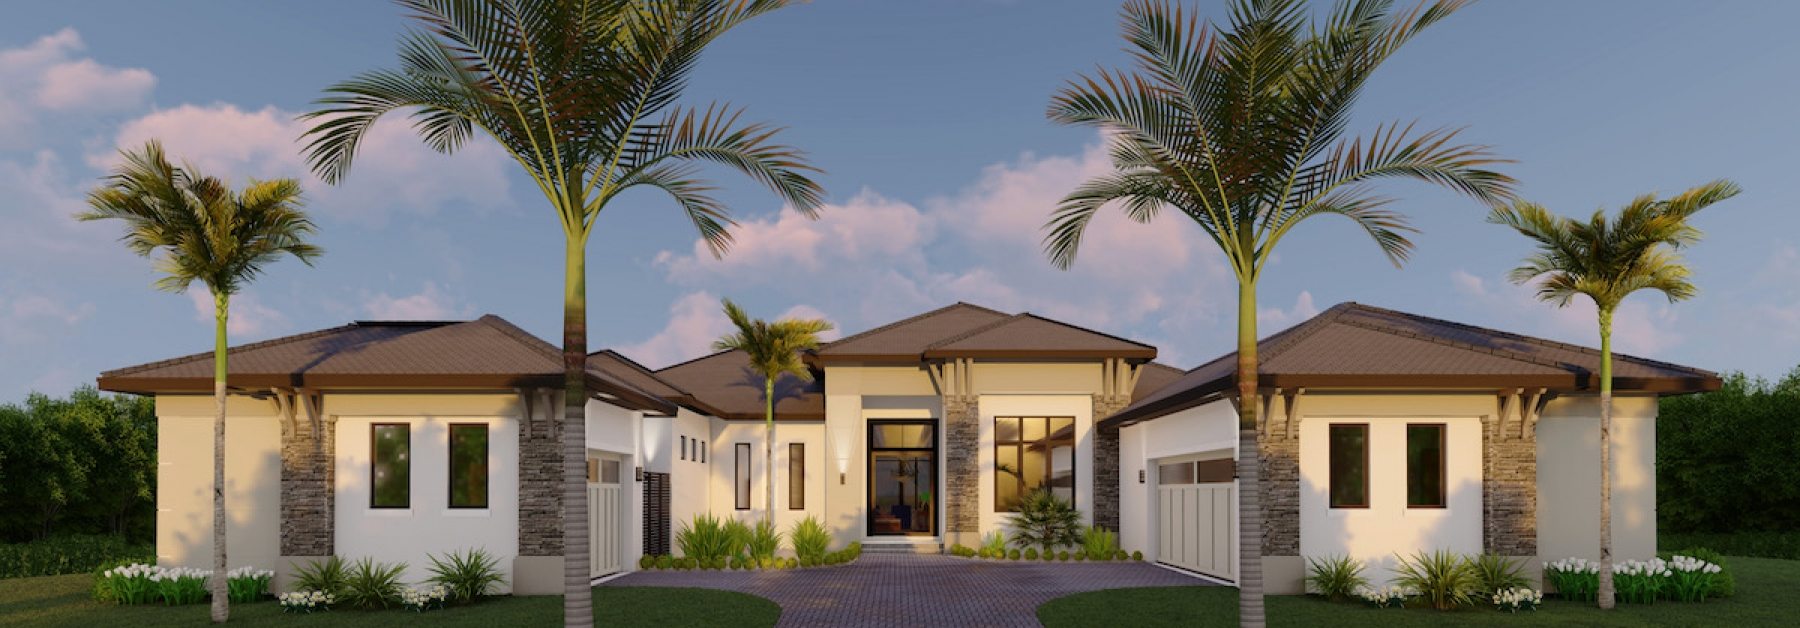 Tindarra model by John Cannon Homes